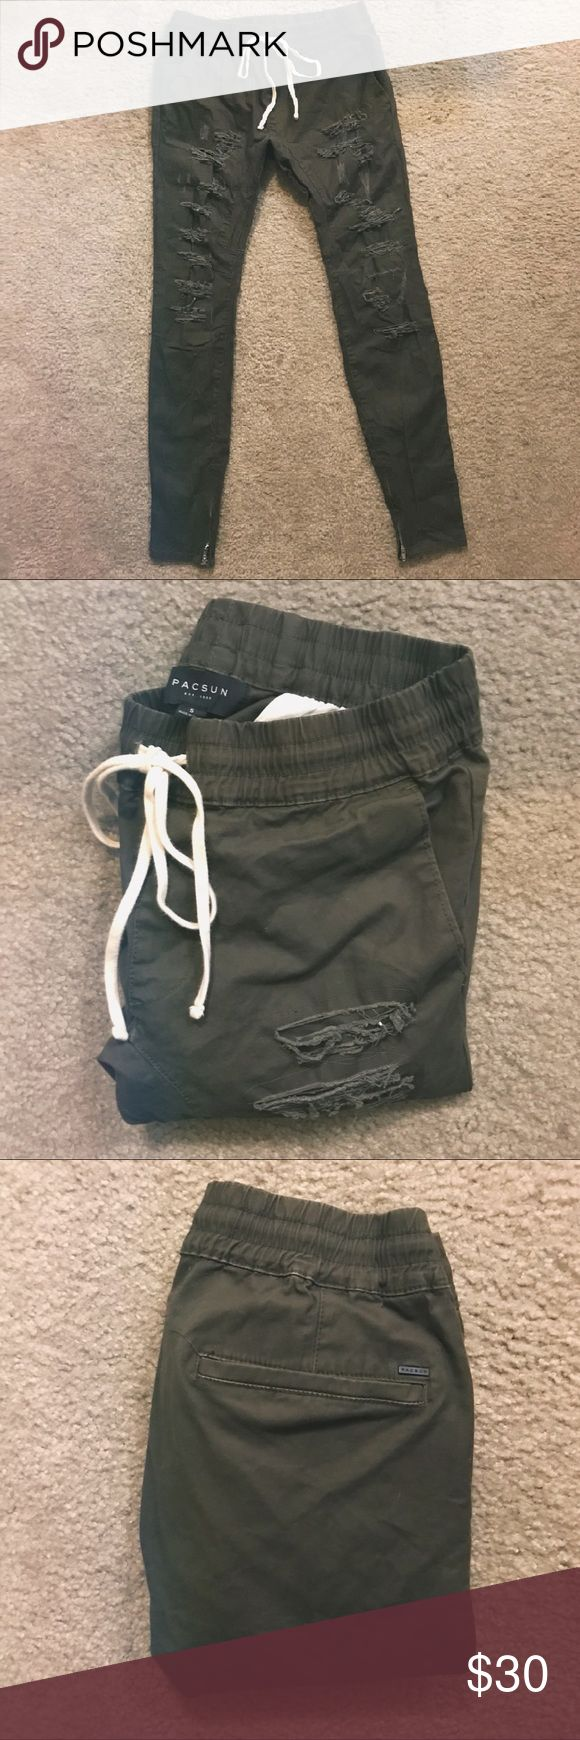 *NWOT* PacSun Men's S Skinny Brown Jogger Pants These joggers have front and back pockets, destroyed detailing with frayed edges throughout, and a versatile skinny fit with zippered cuffs for added edge. (From Pacsun.com) PacSun Pants Sweatpants & Joggers